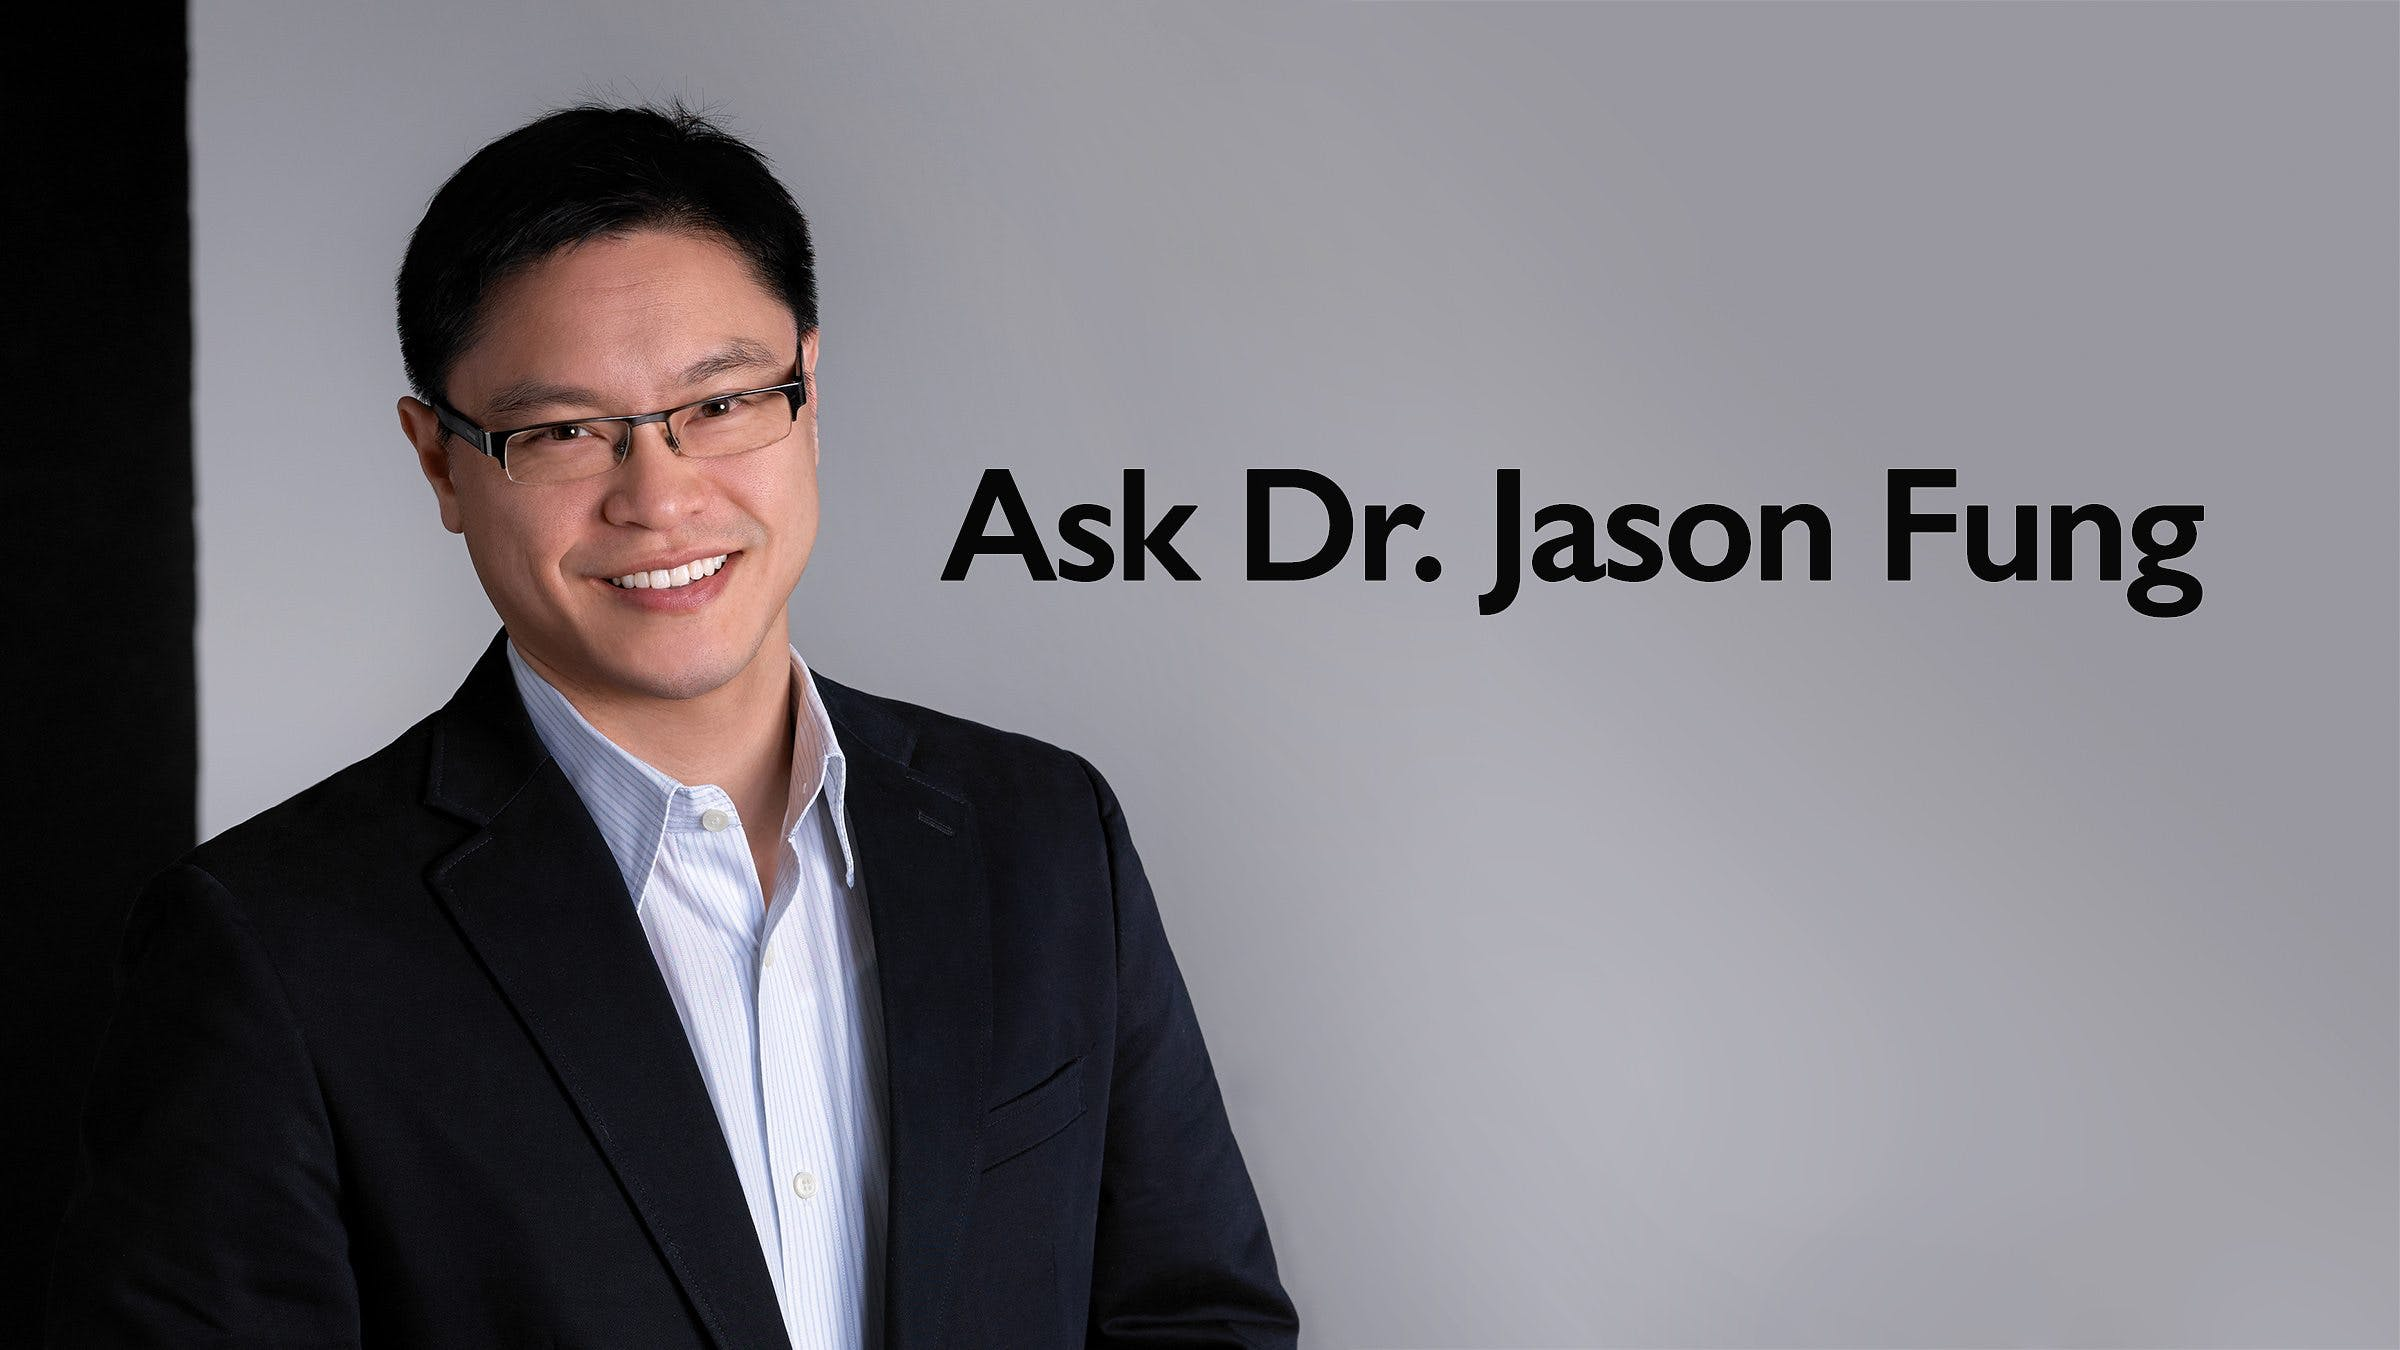 Ask Dr. Jason Fung